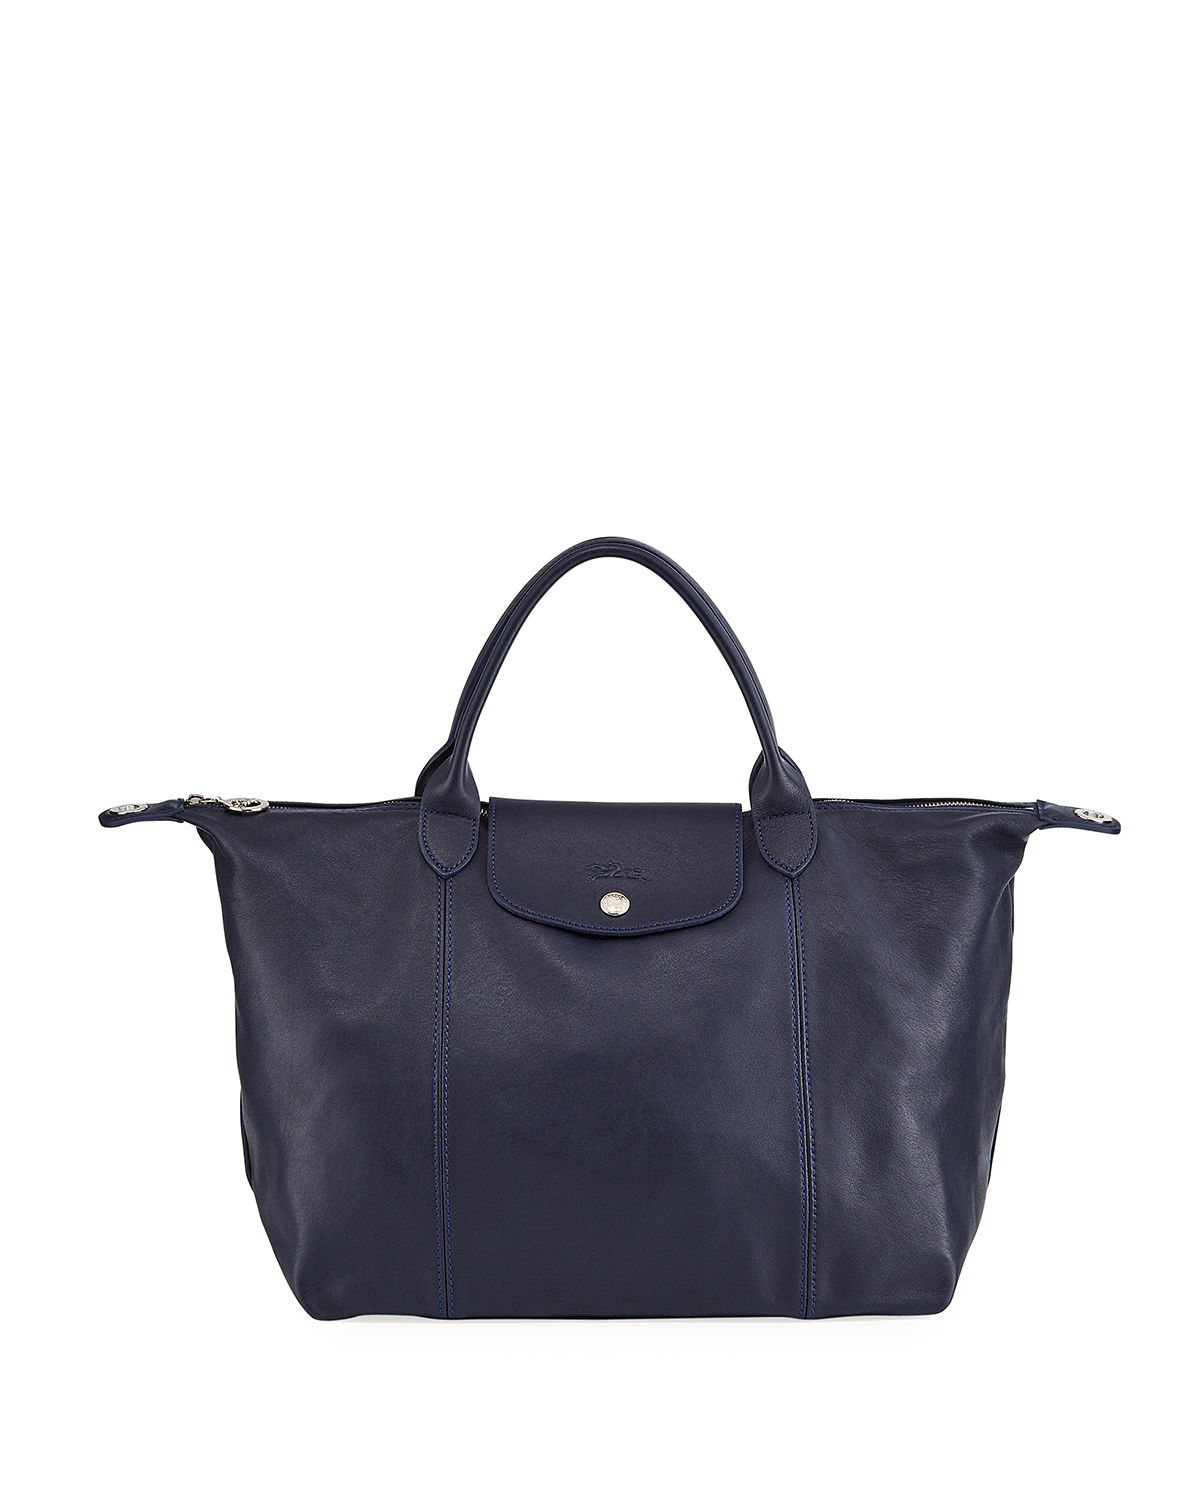 Le Pliage Cuir Medium Leather Handbag with Strap